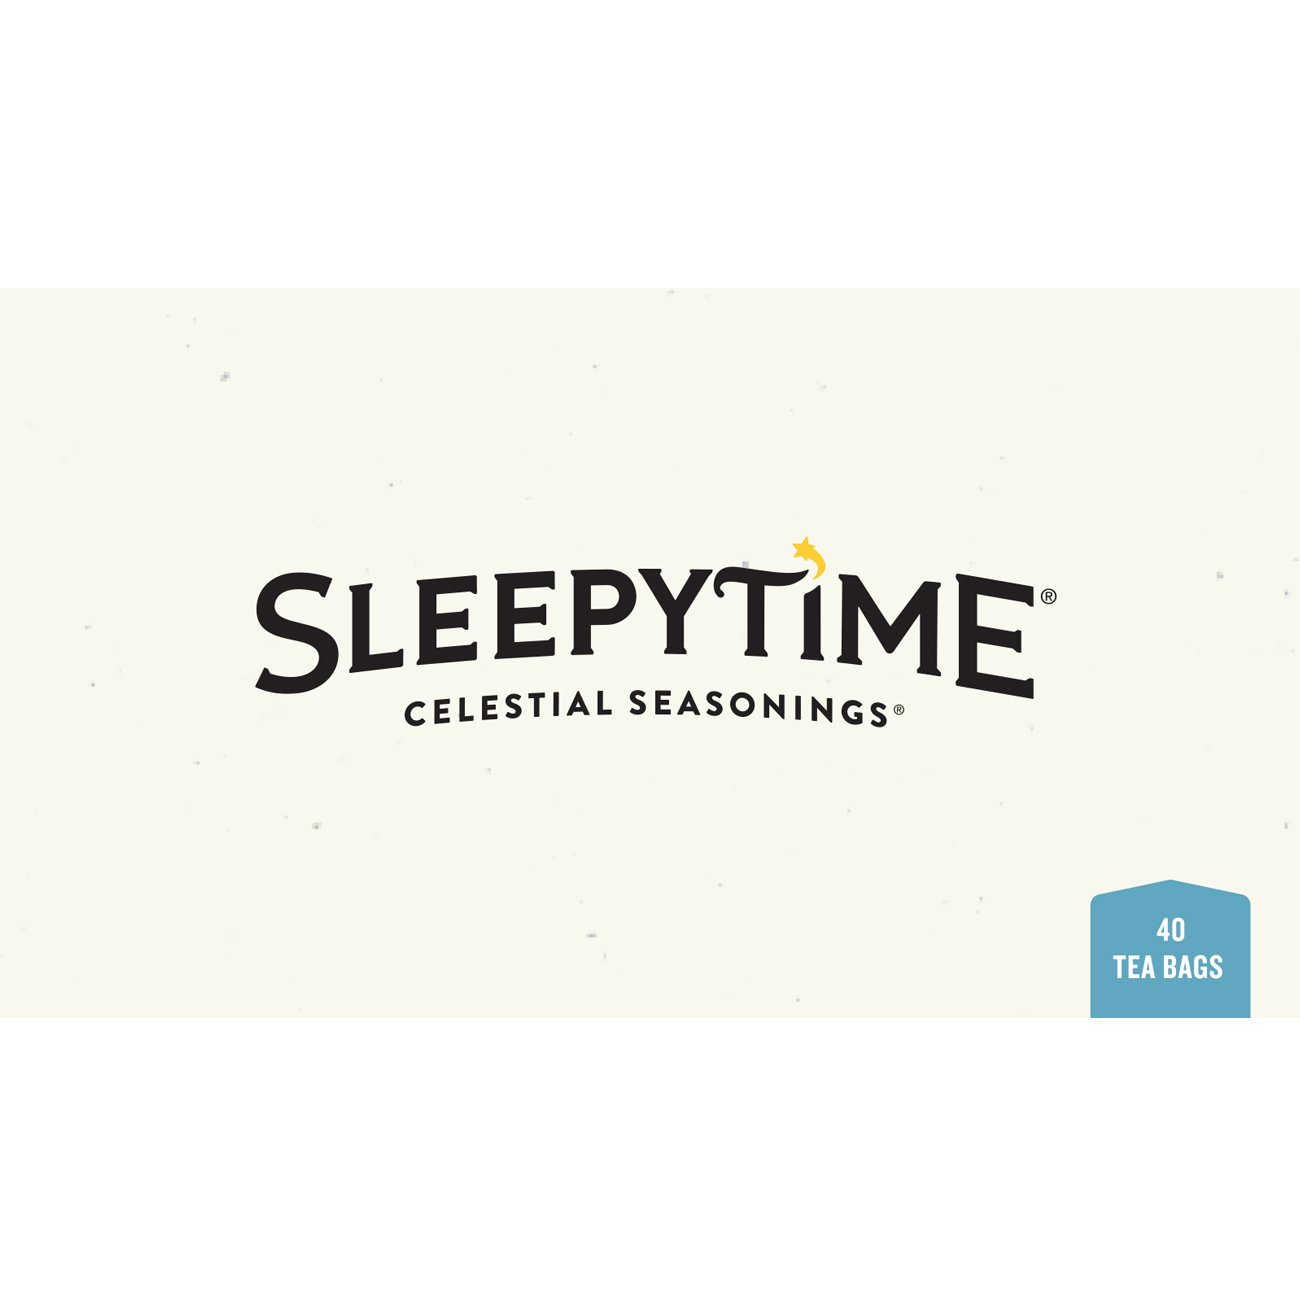 Celestial Seasonings Wellness Tea, Sleepytime Extra, 40 Count (Pack of 6) by Celestial Seasonings (Image #8)